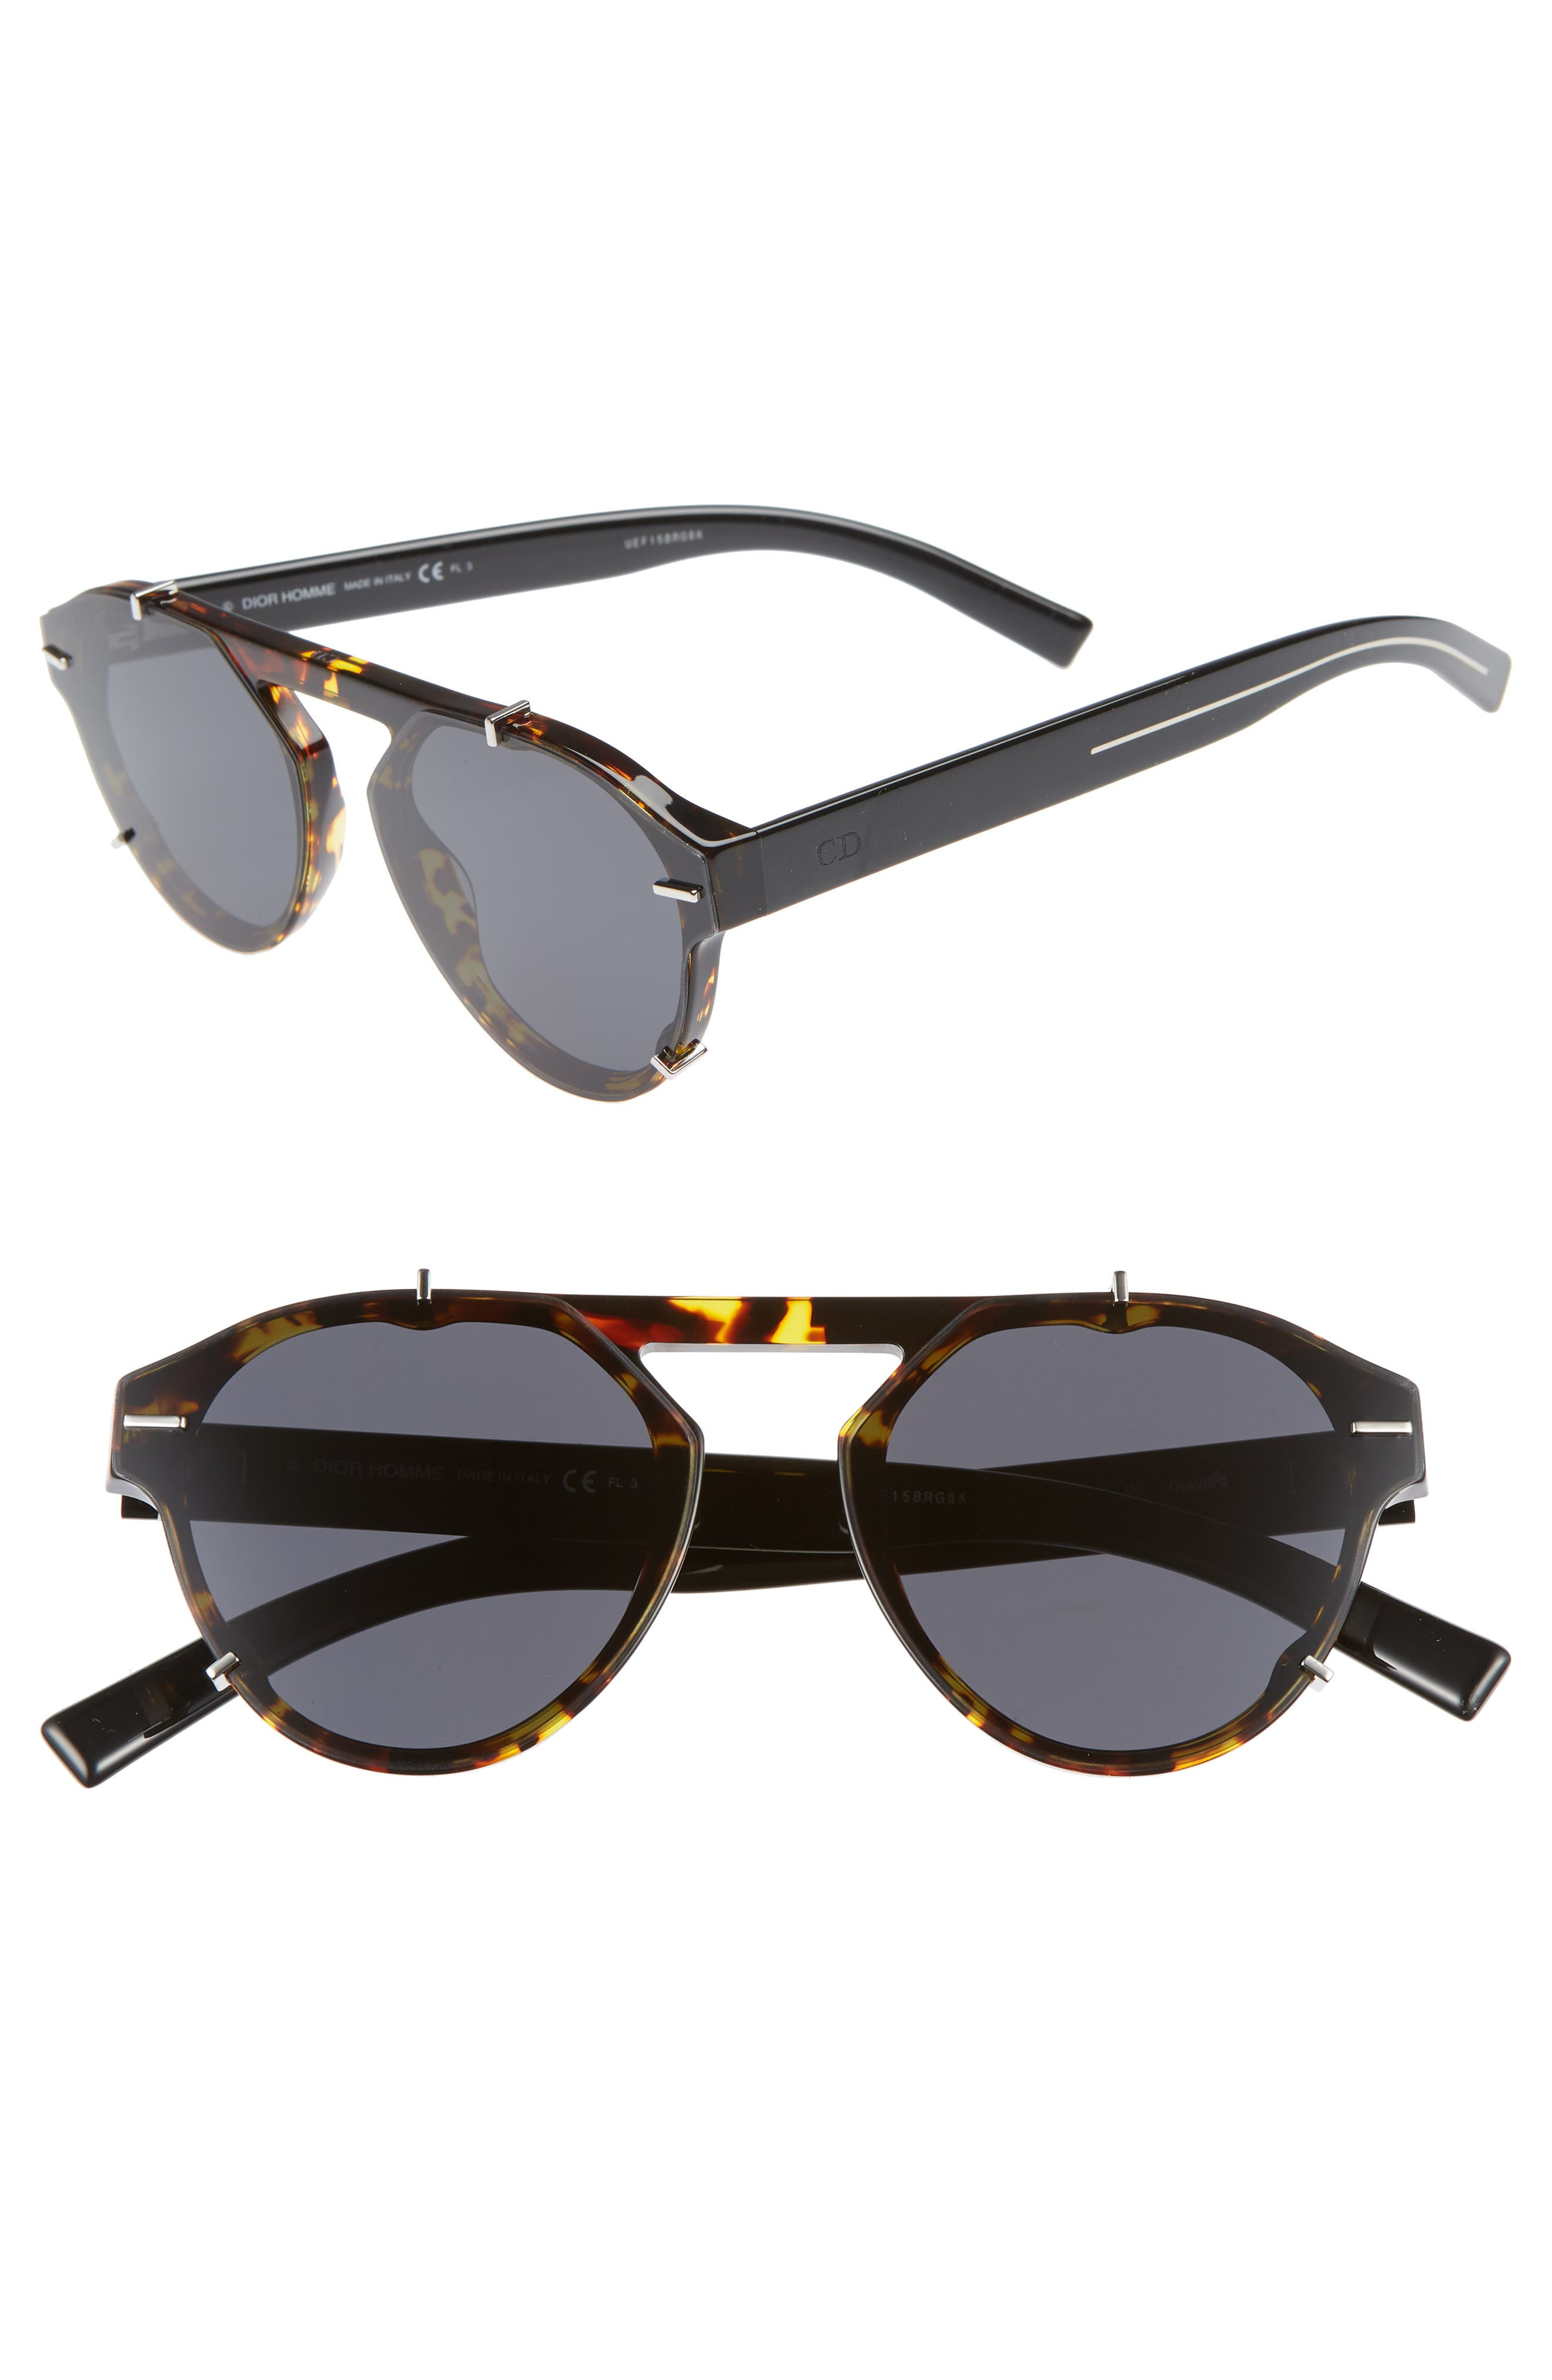 62mm Round Sunglasses,                         Main,                         color, BLACK